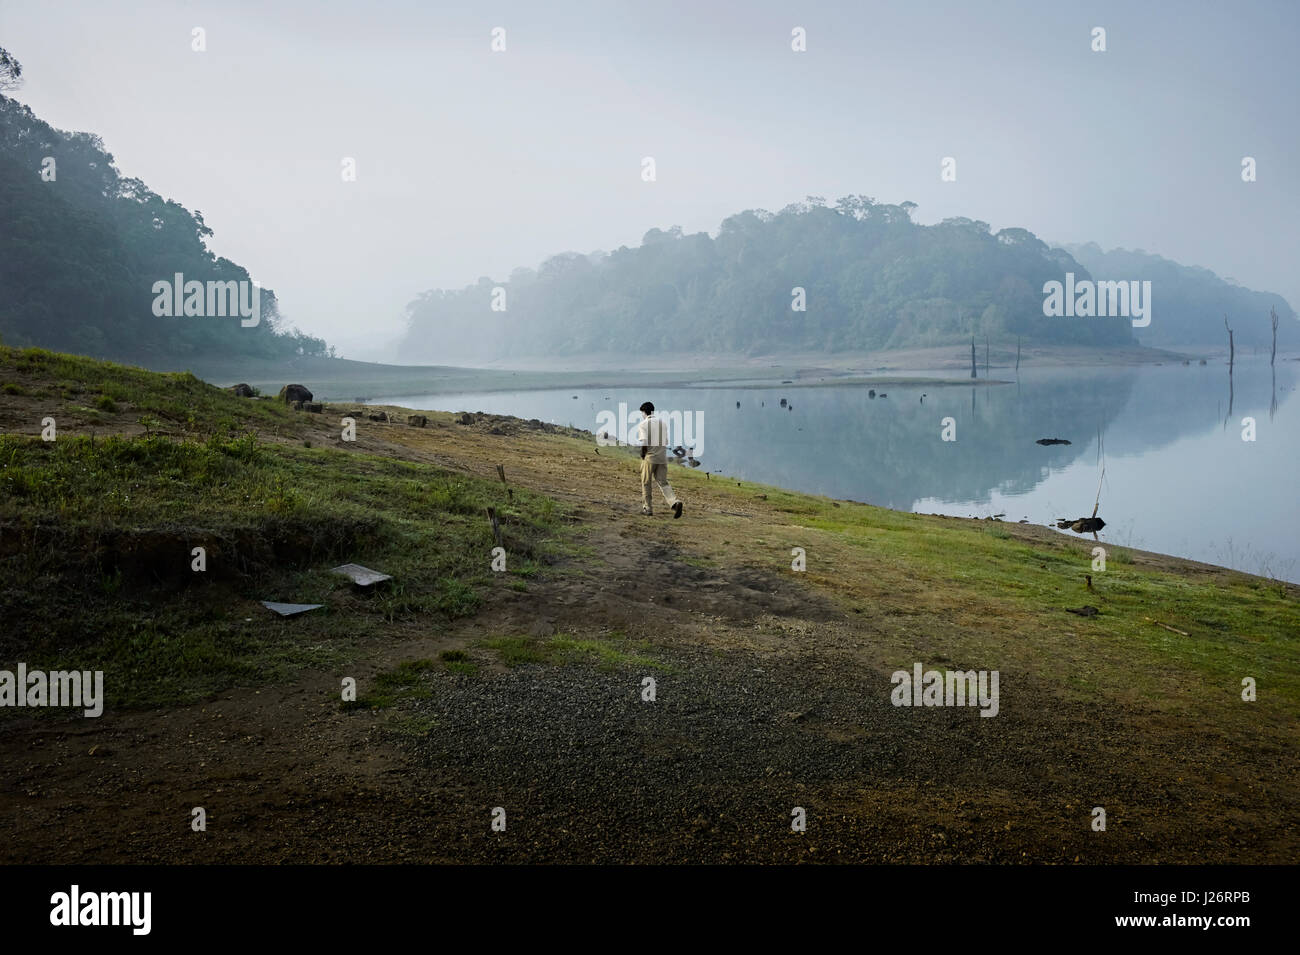 Periyar National Park in Thekkady,Kerala, India is located around the Mullaperiyar Dam's reservoir. - Stock Image